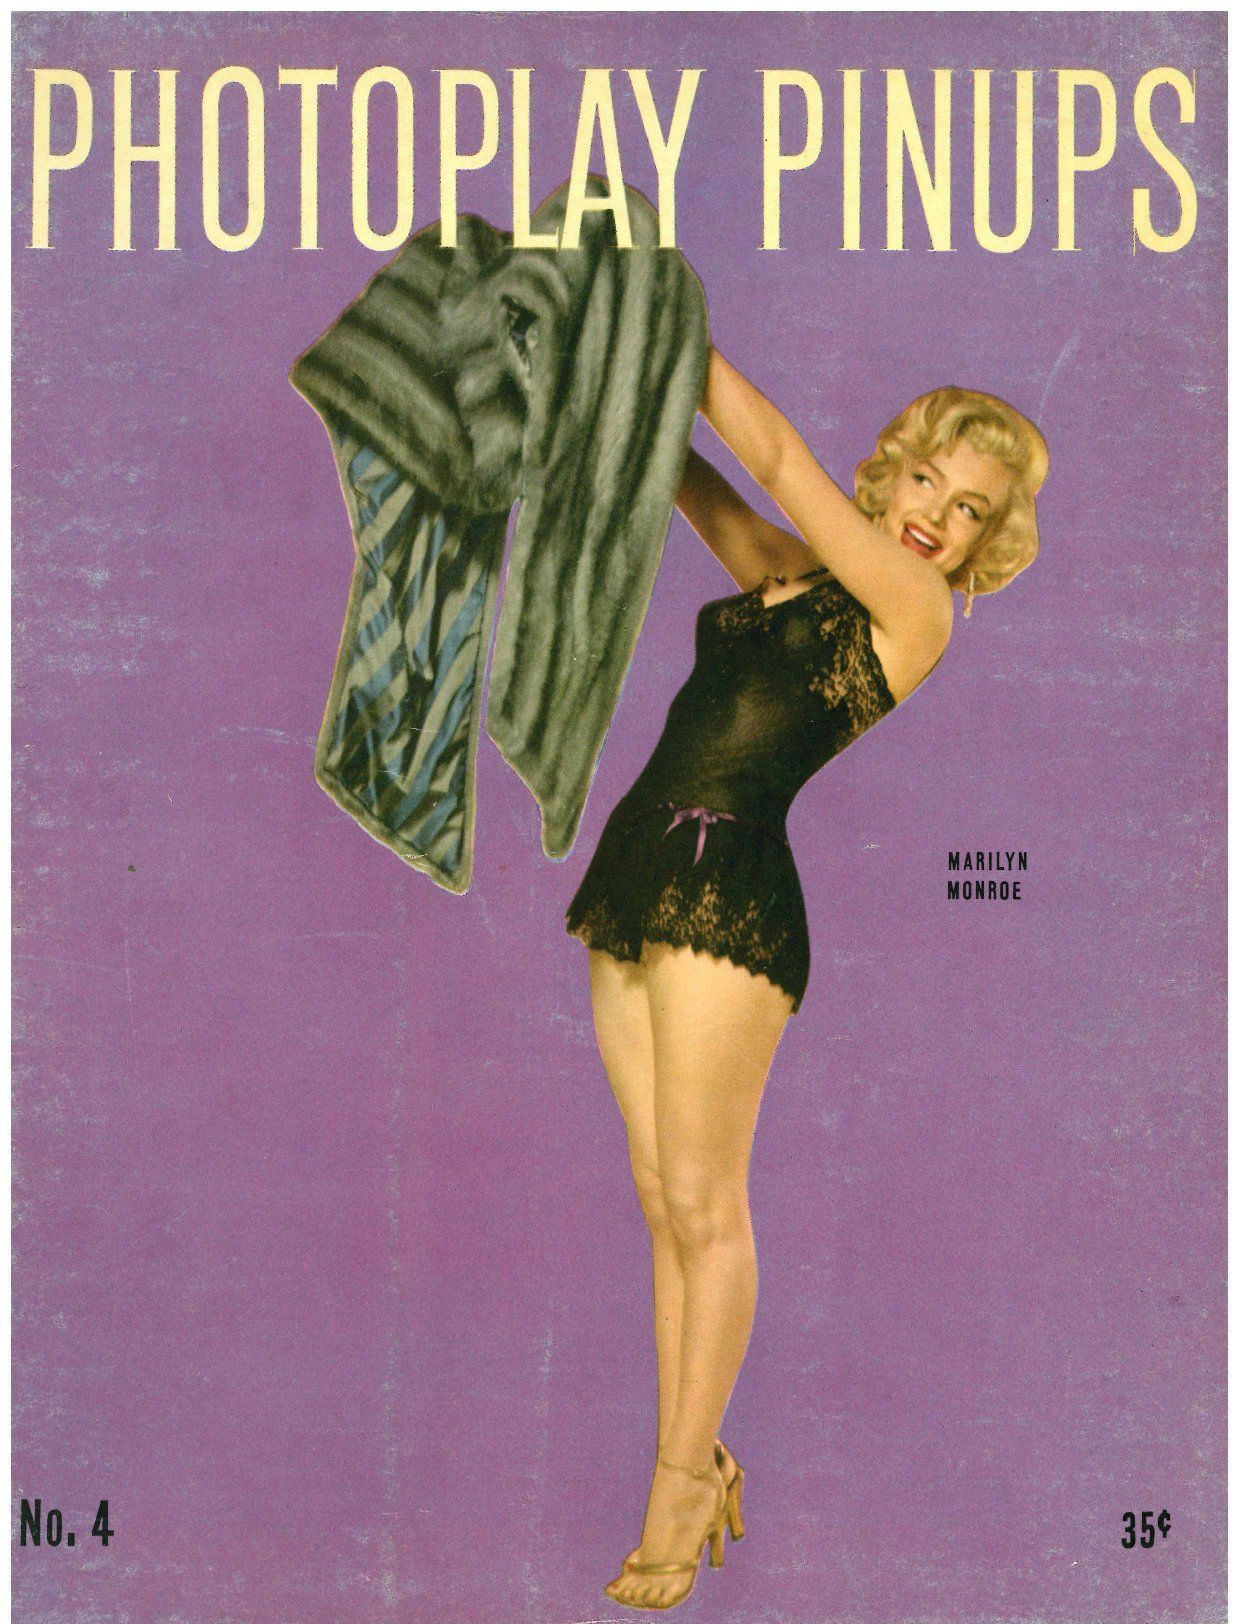 Photoplay pinups (fr) 1953